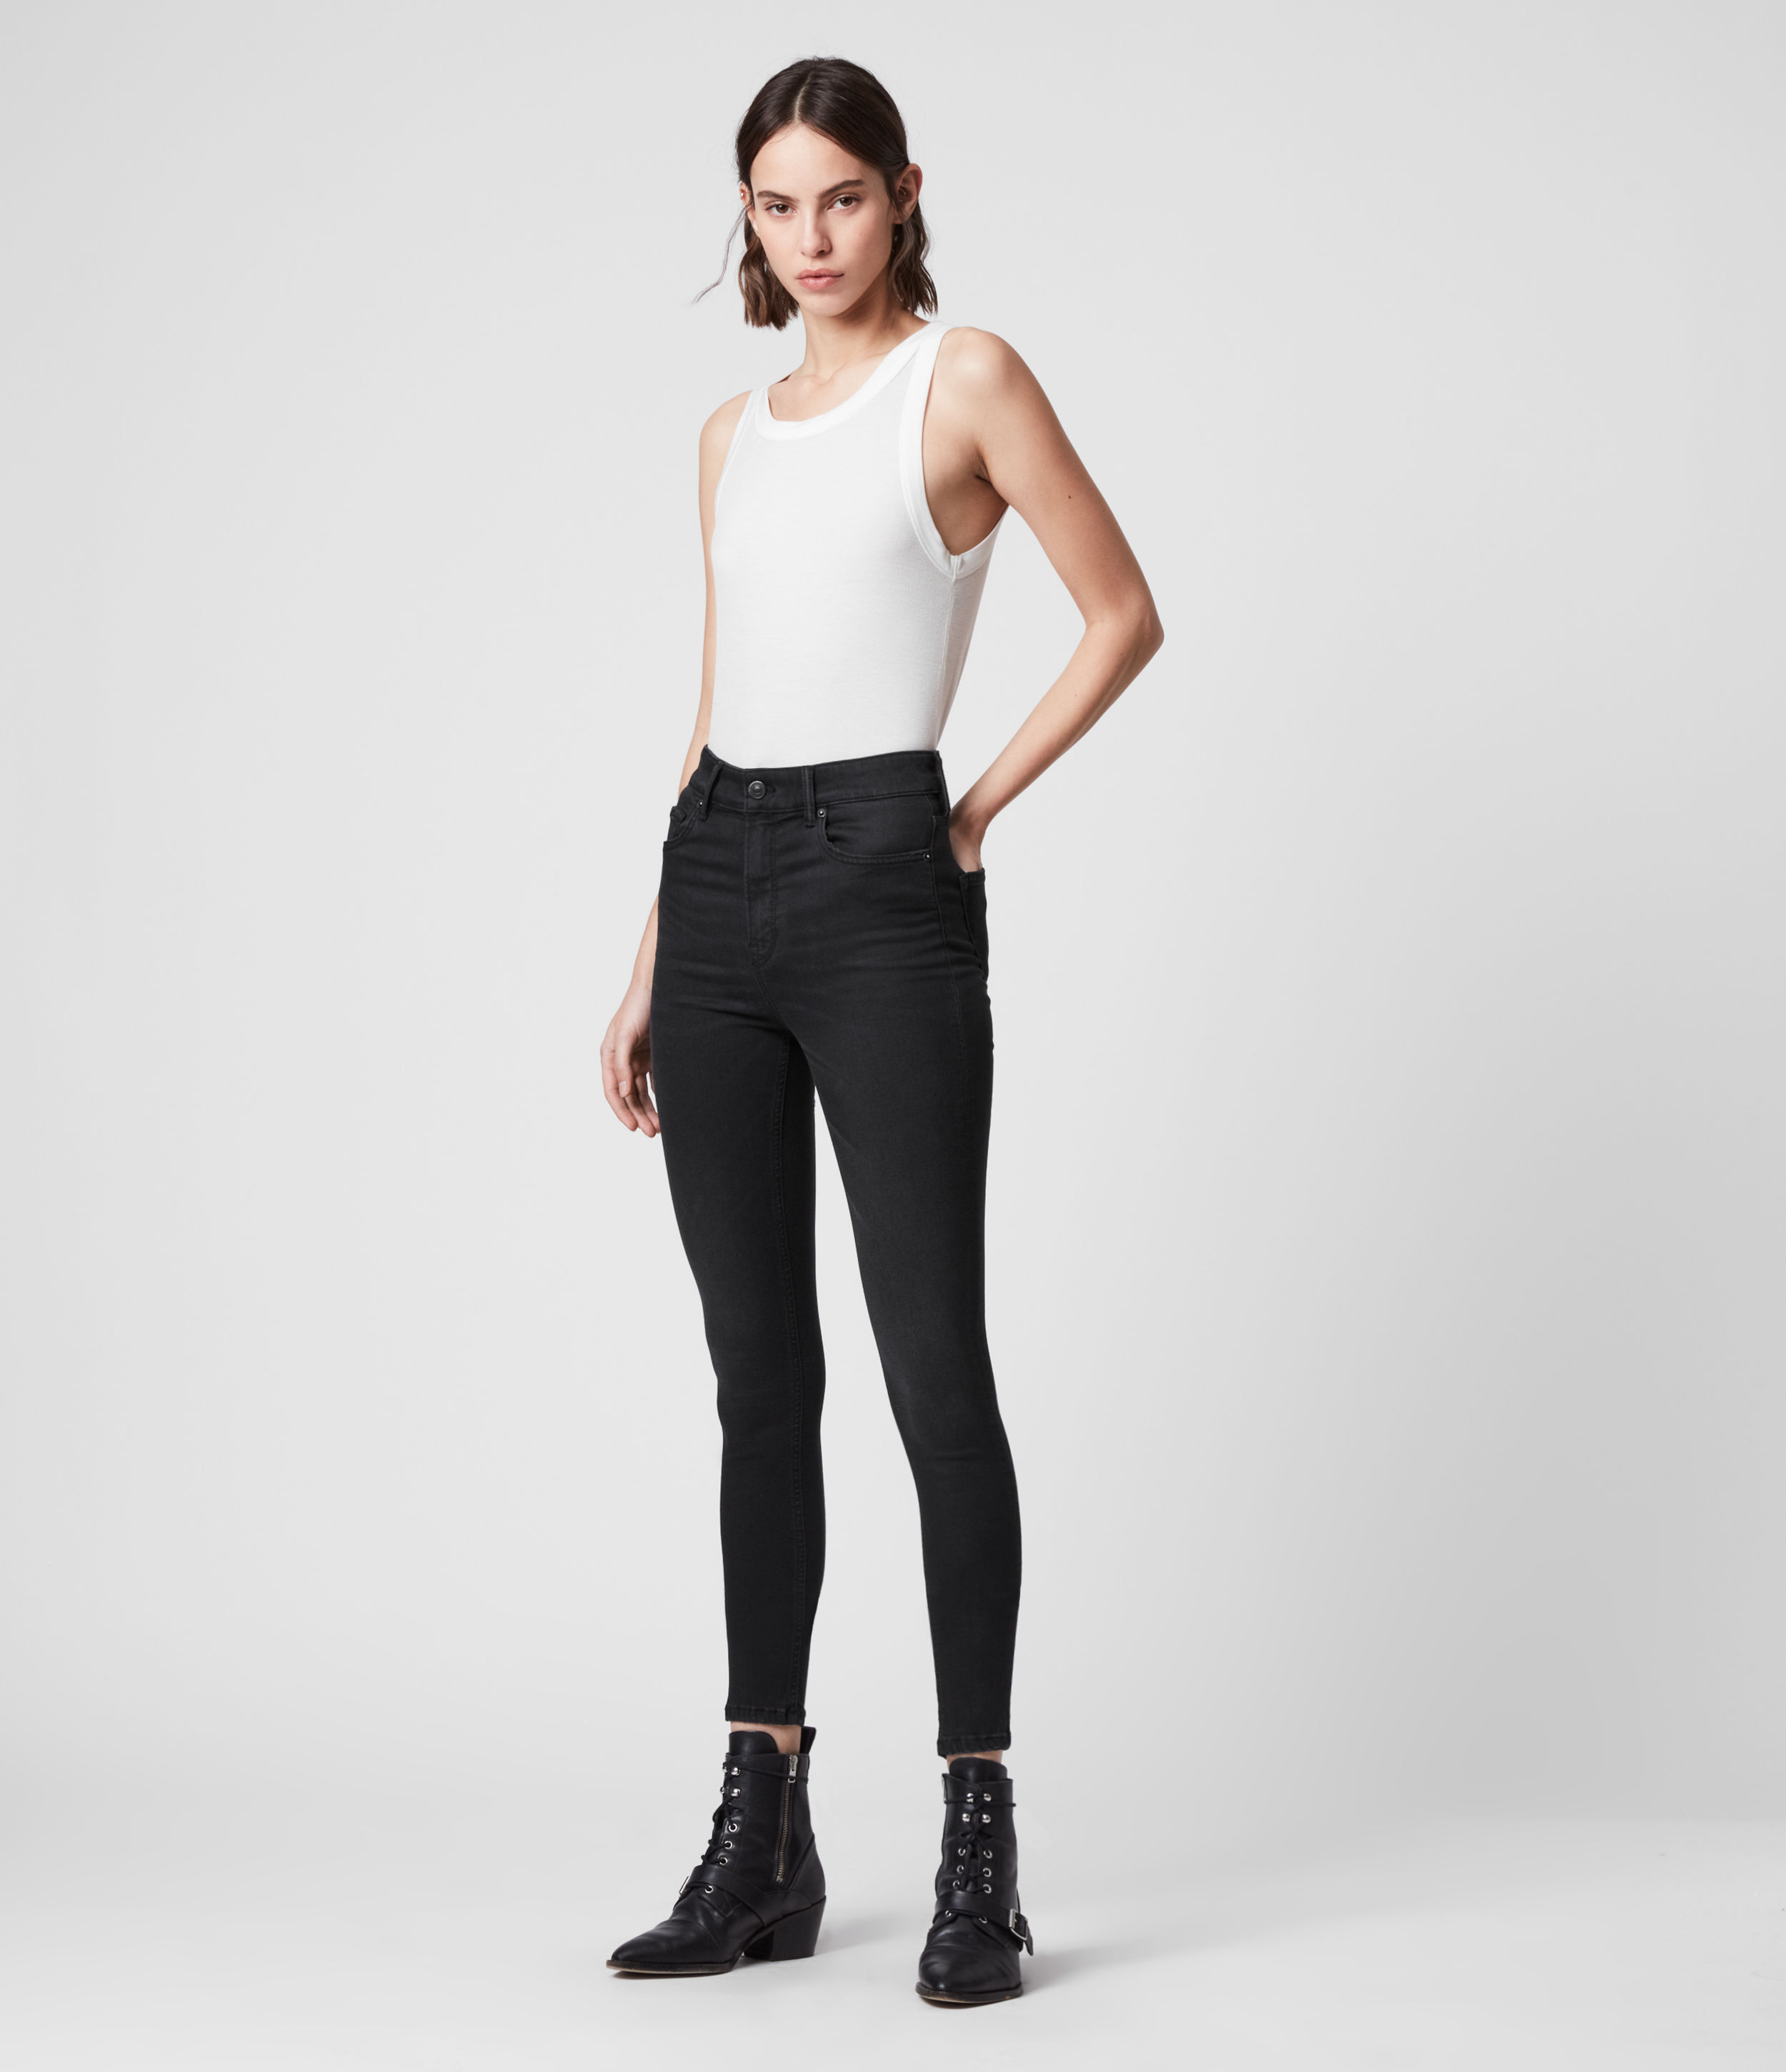 AllSaints Dax High-Rise Superstretch Skinny Jeans, Black